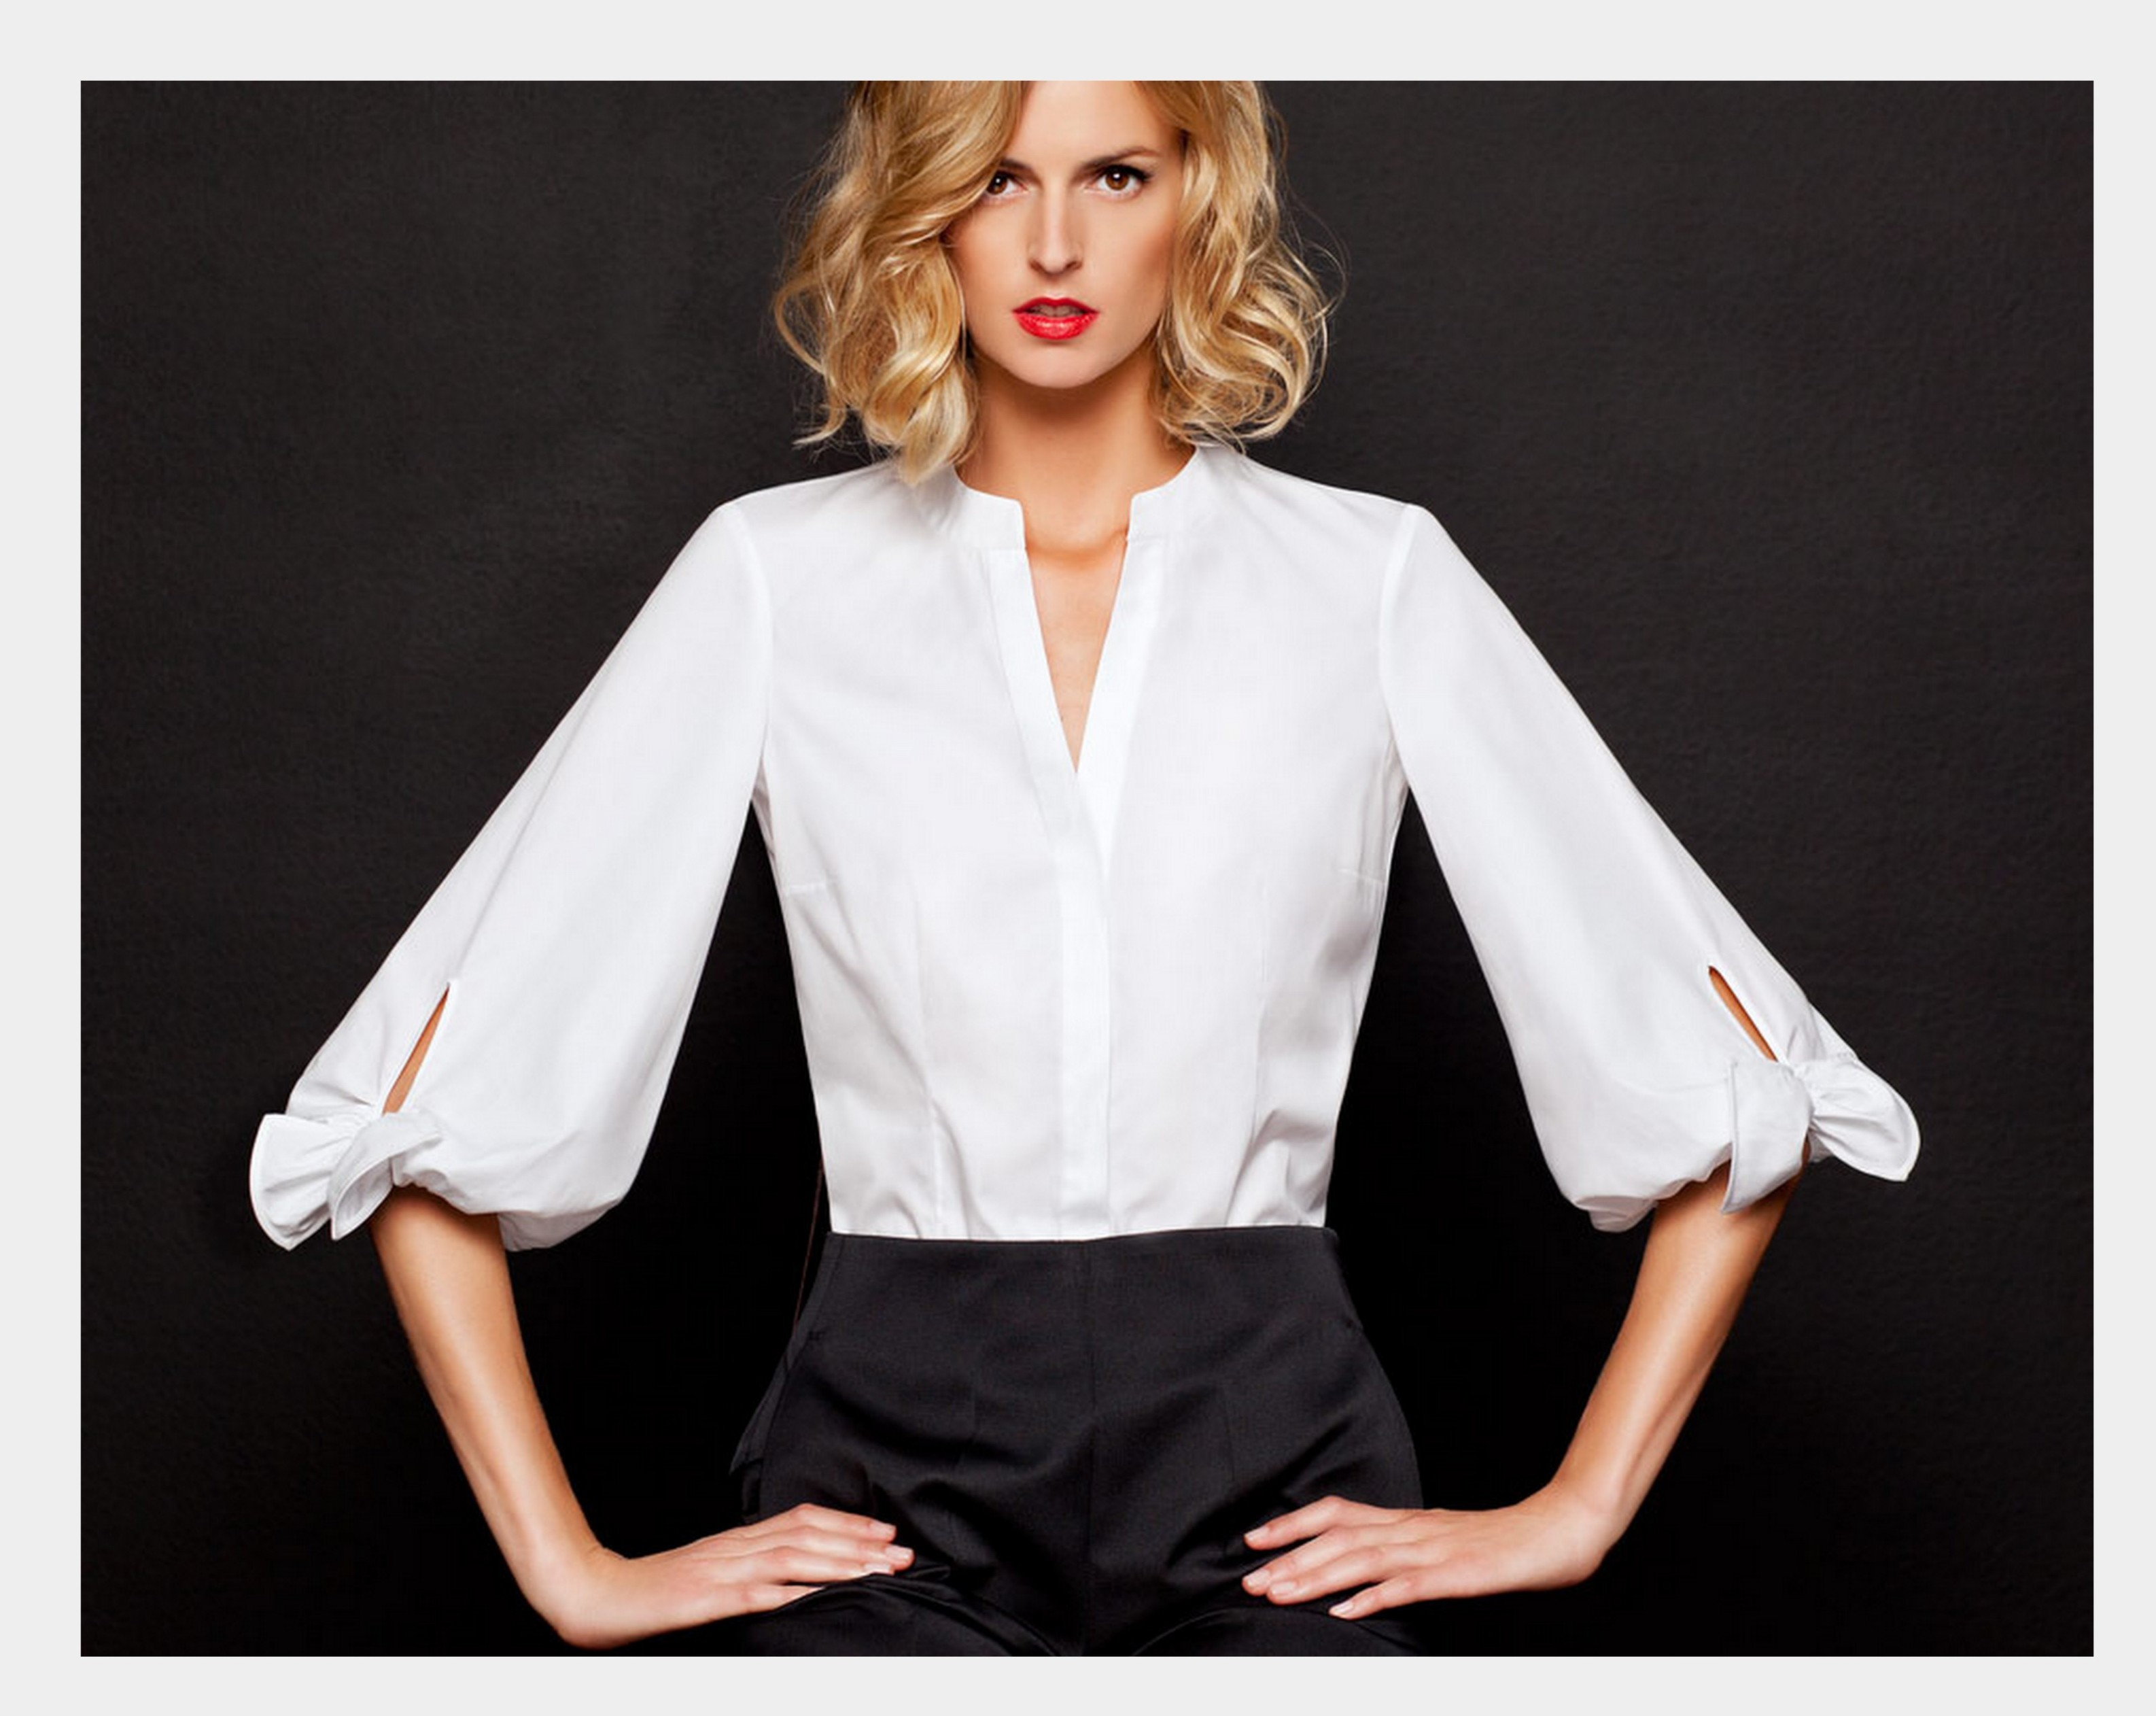 Image result for blusa blanca mujer oficina